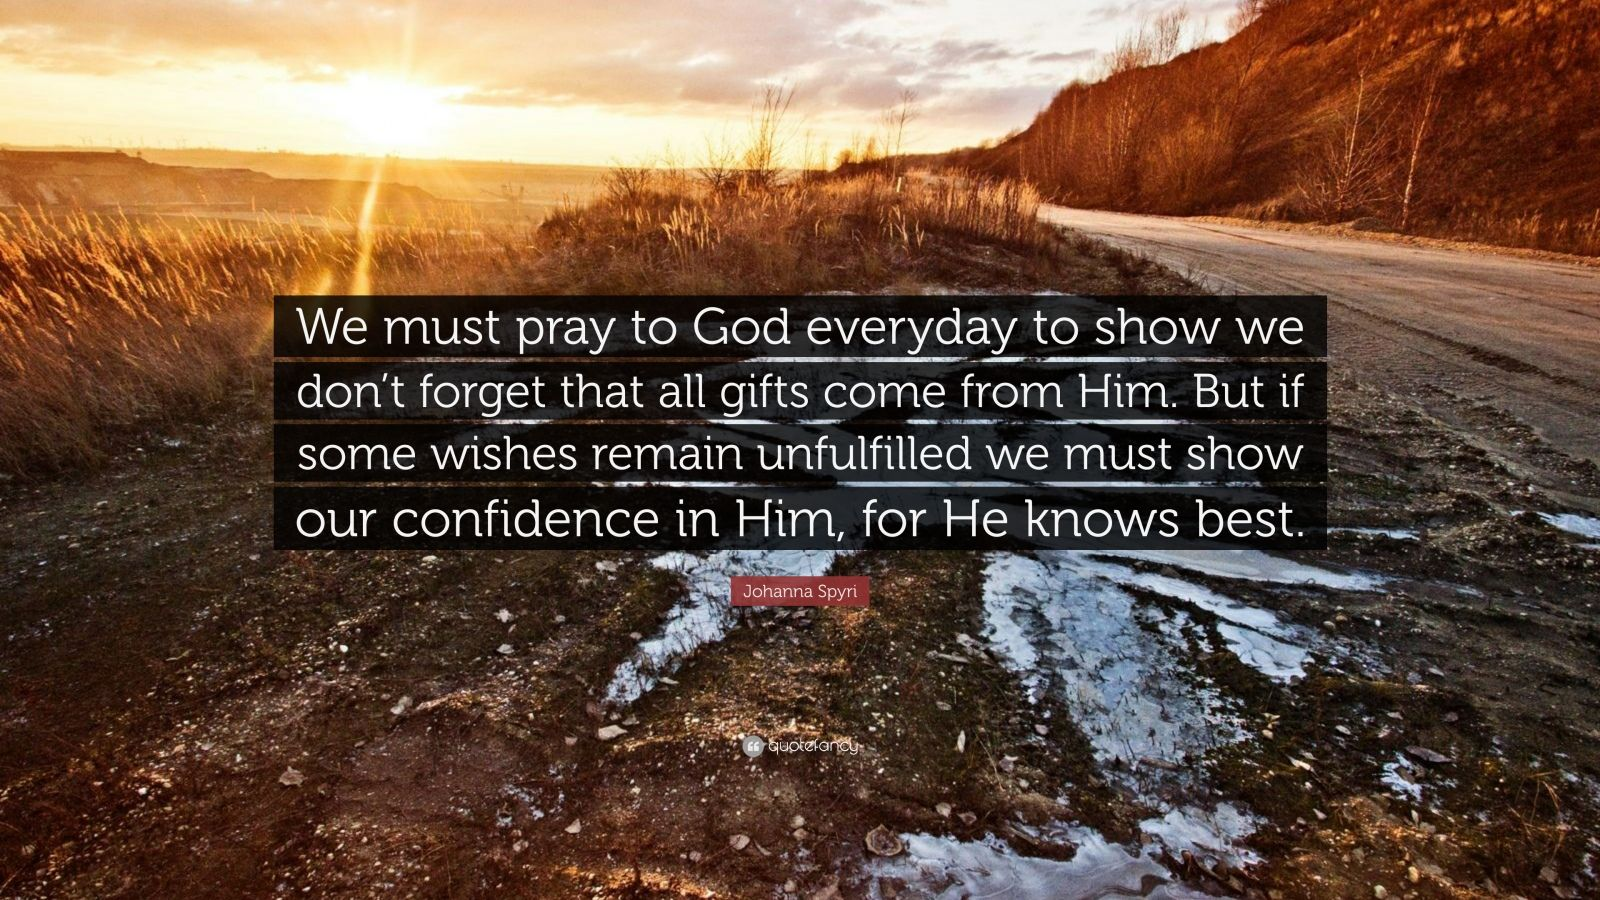 """Johanna Spyri Quote: """"We must pray to God everyday to show we don't forget that all gifts come from Him. But if some wishes remain unfulfilled we must show our confidence in Him, for He knows best."""""""